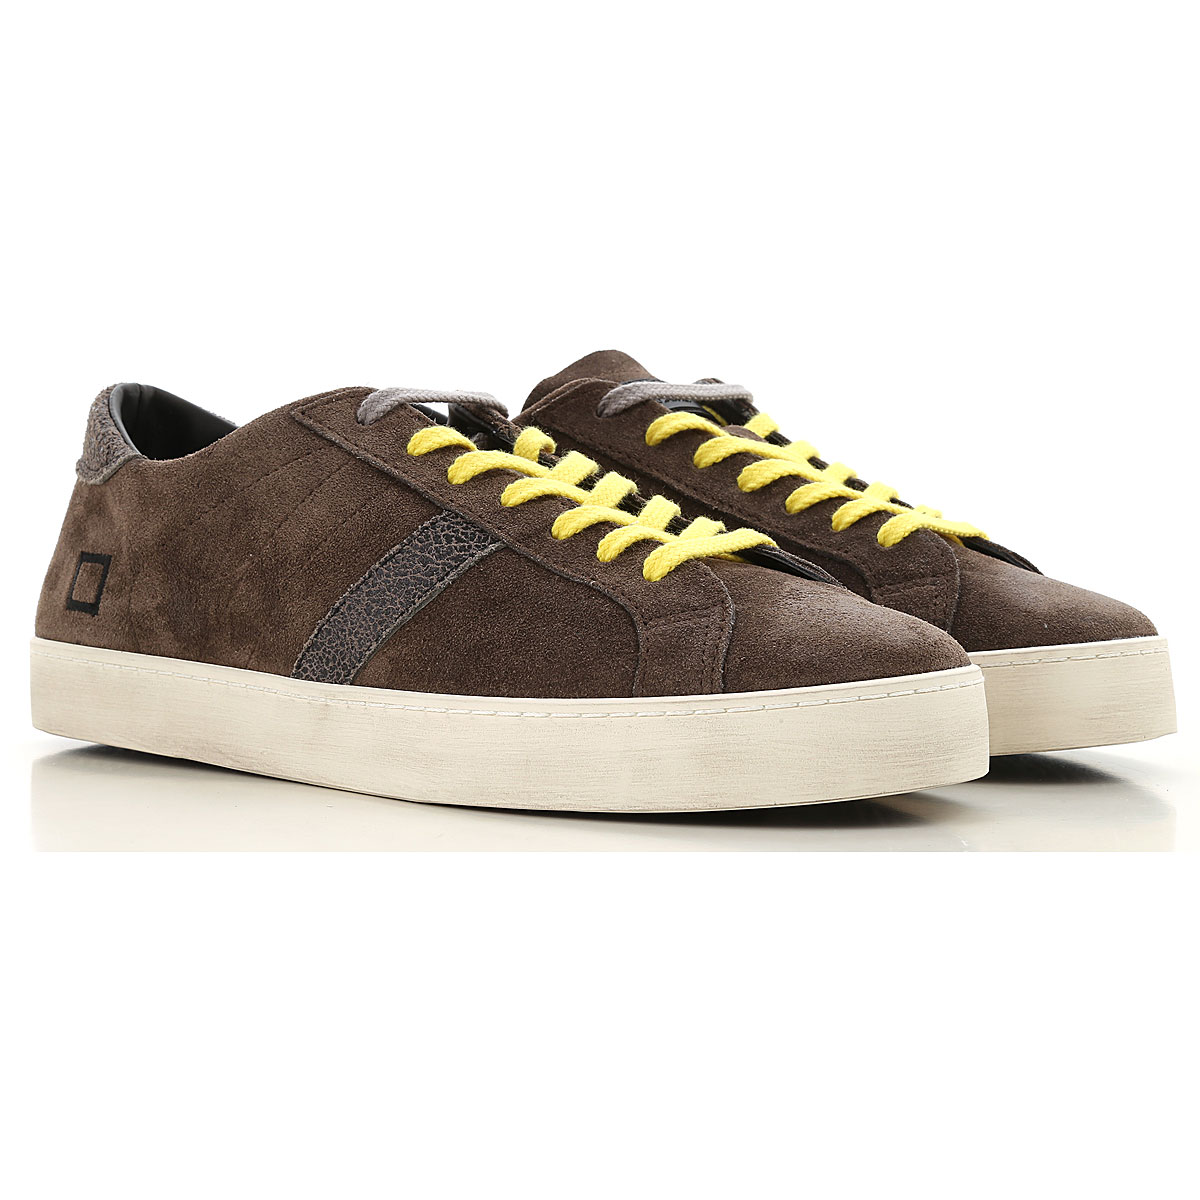 D.A.T.E. Sneakers for Men Mud USA - GOOFASH